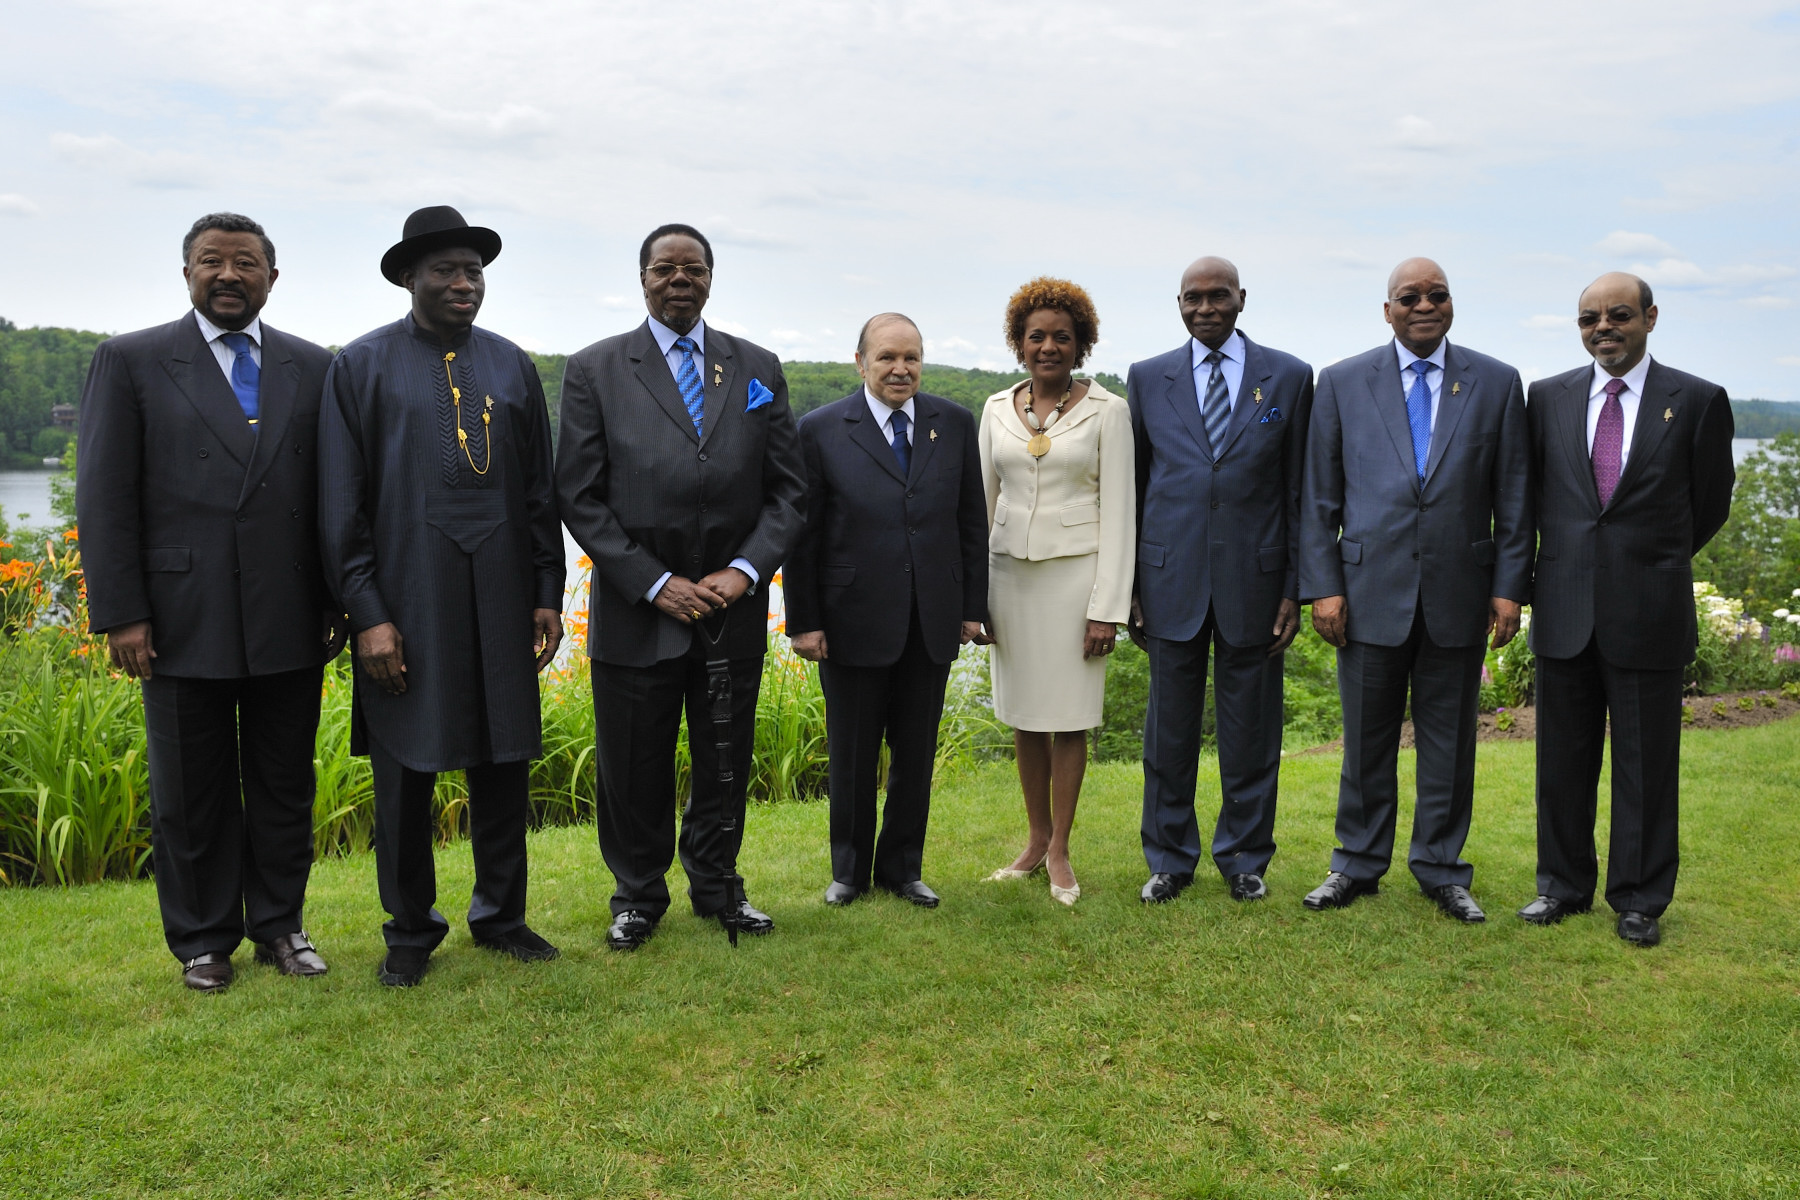 The Governor General hosted a working luncheon in Huntsville to welcome the following African leaders to Canada: Abdelaziz Bouteflika, President of the People's Democratic Republic of Algeria; Abdoulaye Wade, President of the Republic of Senegal; Bingu wa Mutharika, President of the Republic of Malawi and Chairperson of the African Union;  Jacob Gedleyihlekisa Zuma, President of the Republic of South Africa; Dr. Goodluck Ebele Jonathan, President and Grand Commander of the Federal Republic of Nigeria; Ato Meles Zanawi, Prime Minister of the Federal Democratic Republic of Ethiopia and Chair of the New Partnership for Africa's Development (NEPAD); Dr. Jean Ping, Chairperson of the African Union Commission.